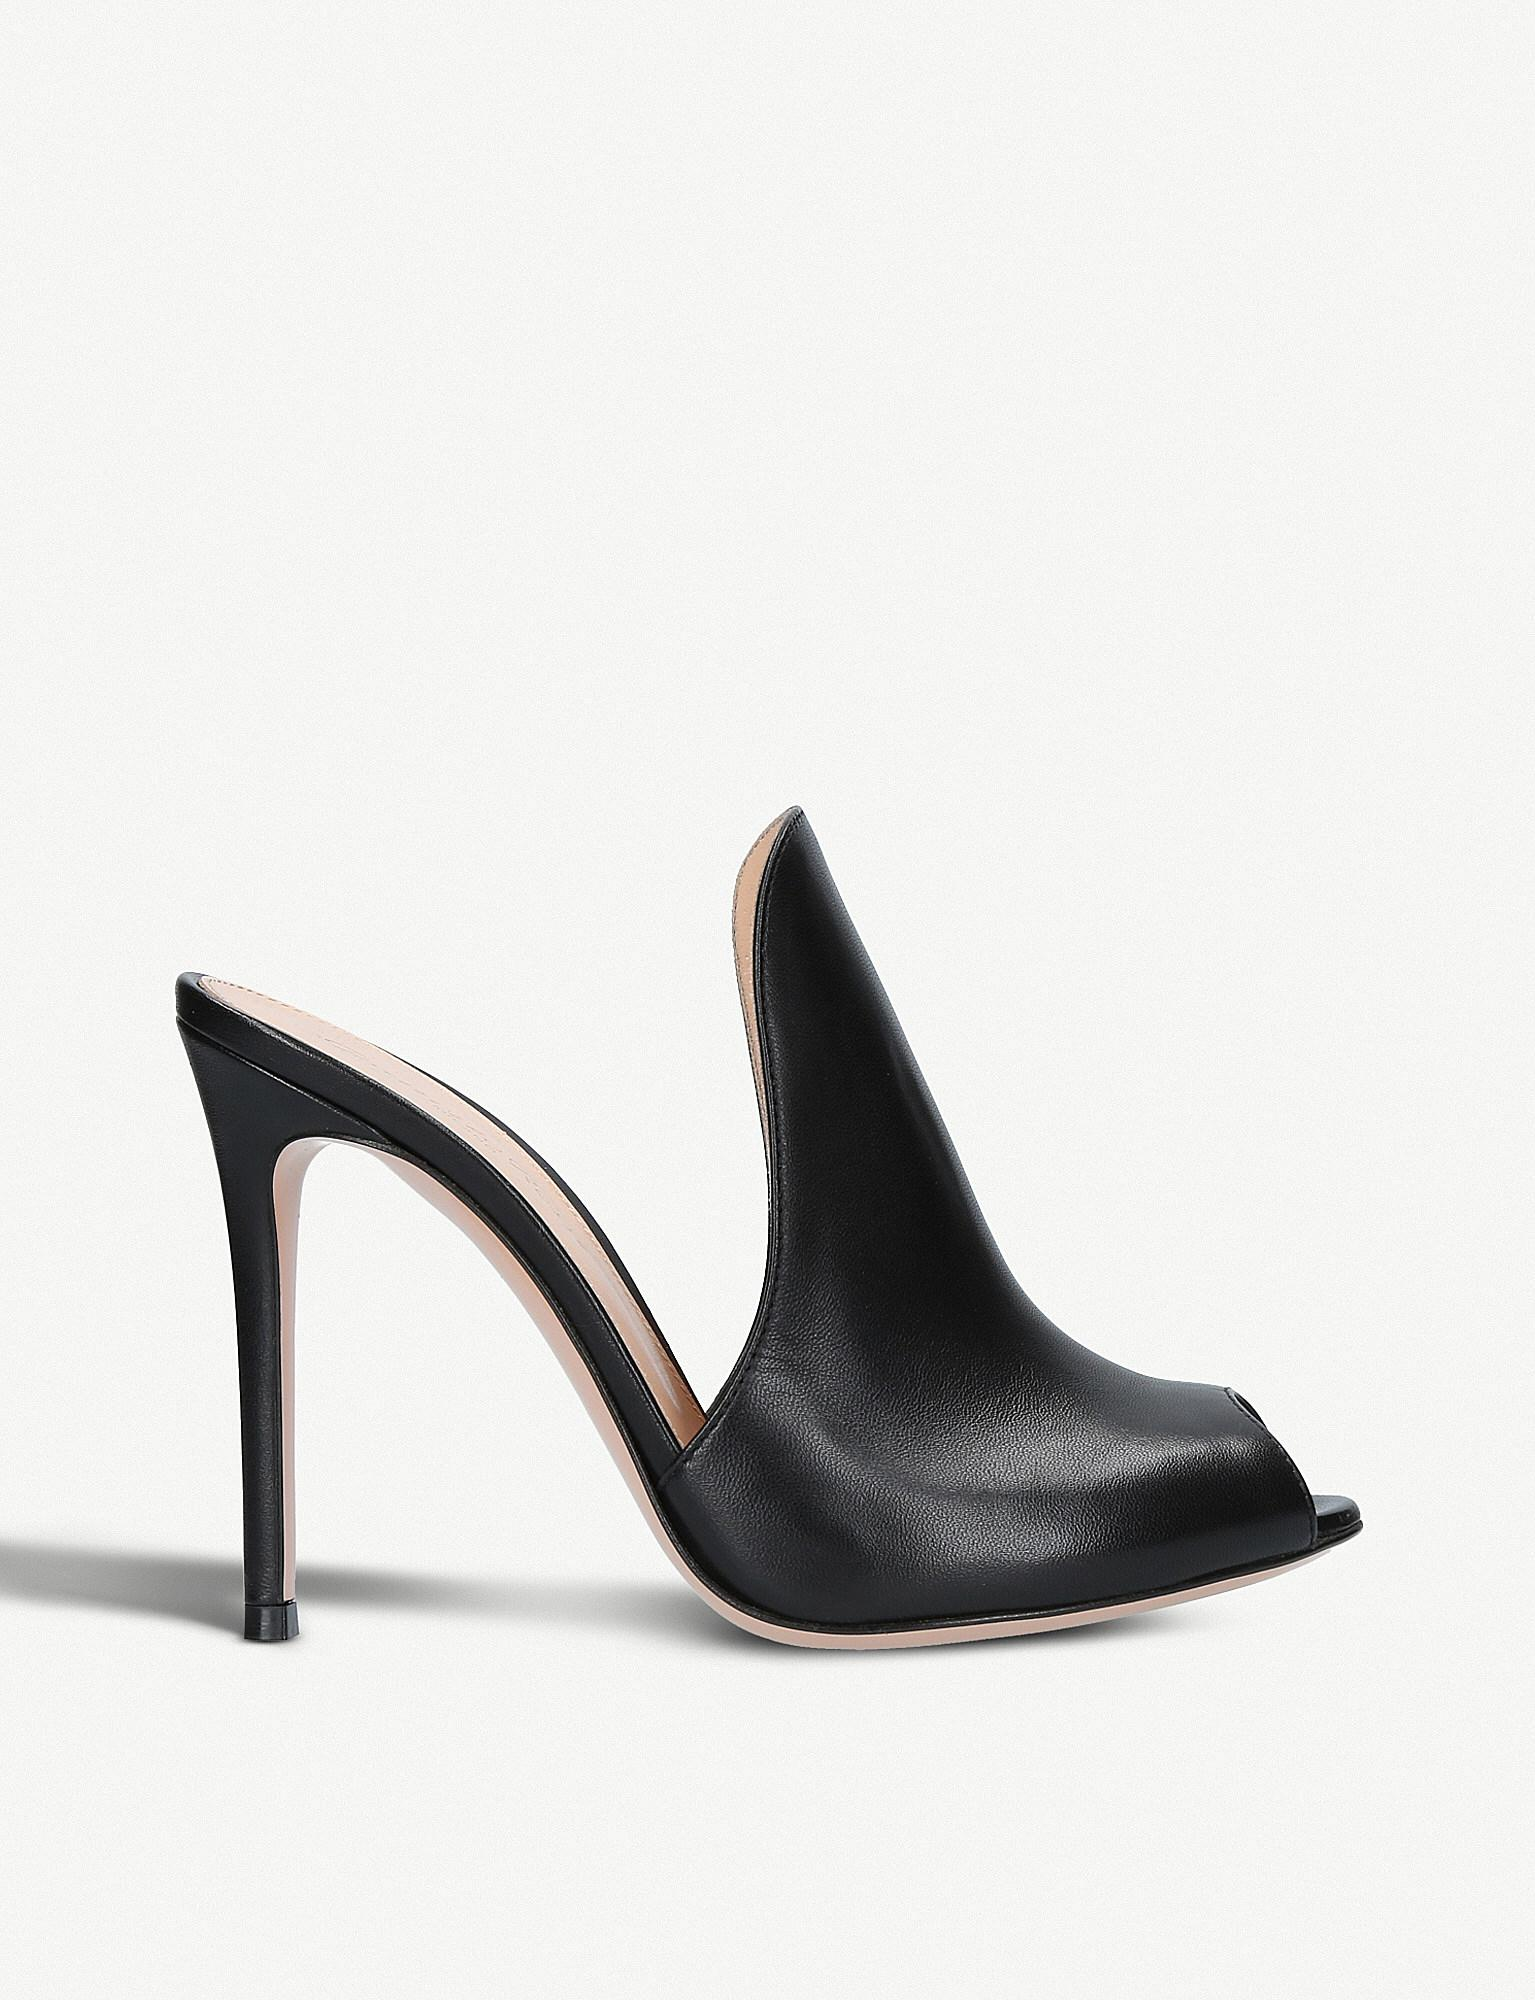 6ba532b4e4159 Gianvito Rossi Aramis 105 Leather Heeled Mules in Black - Lyst